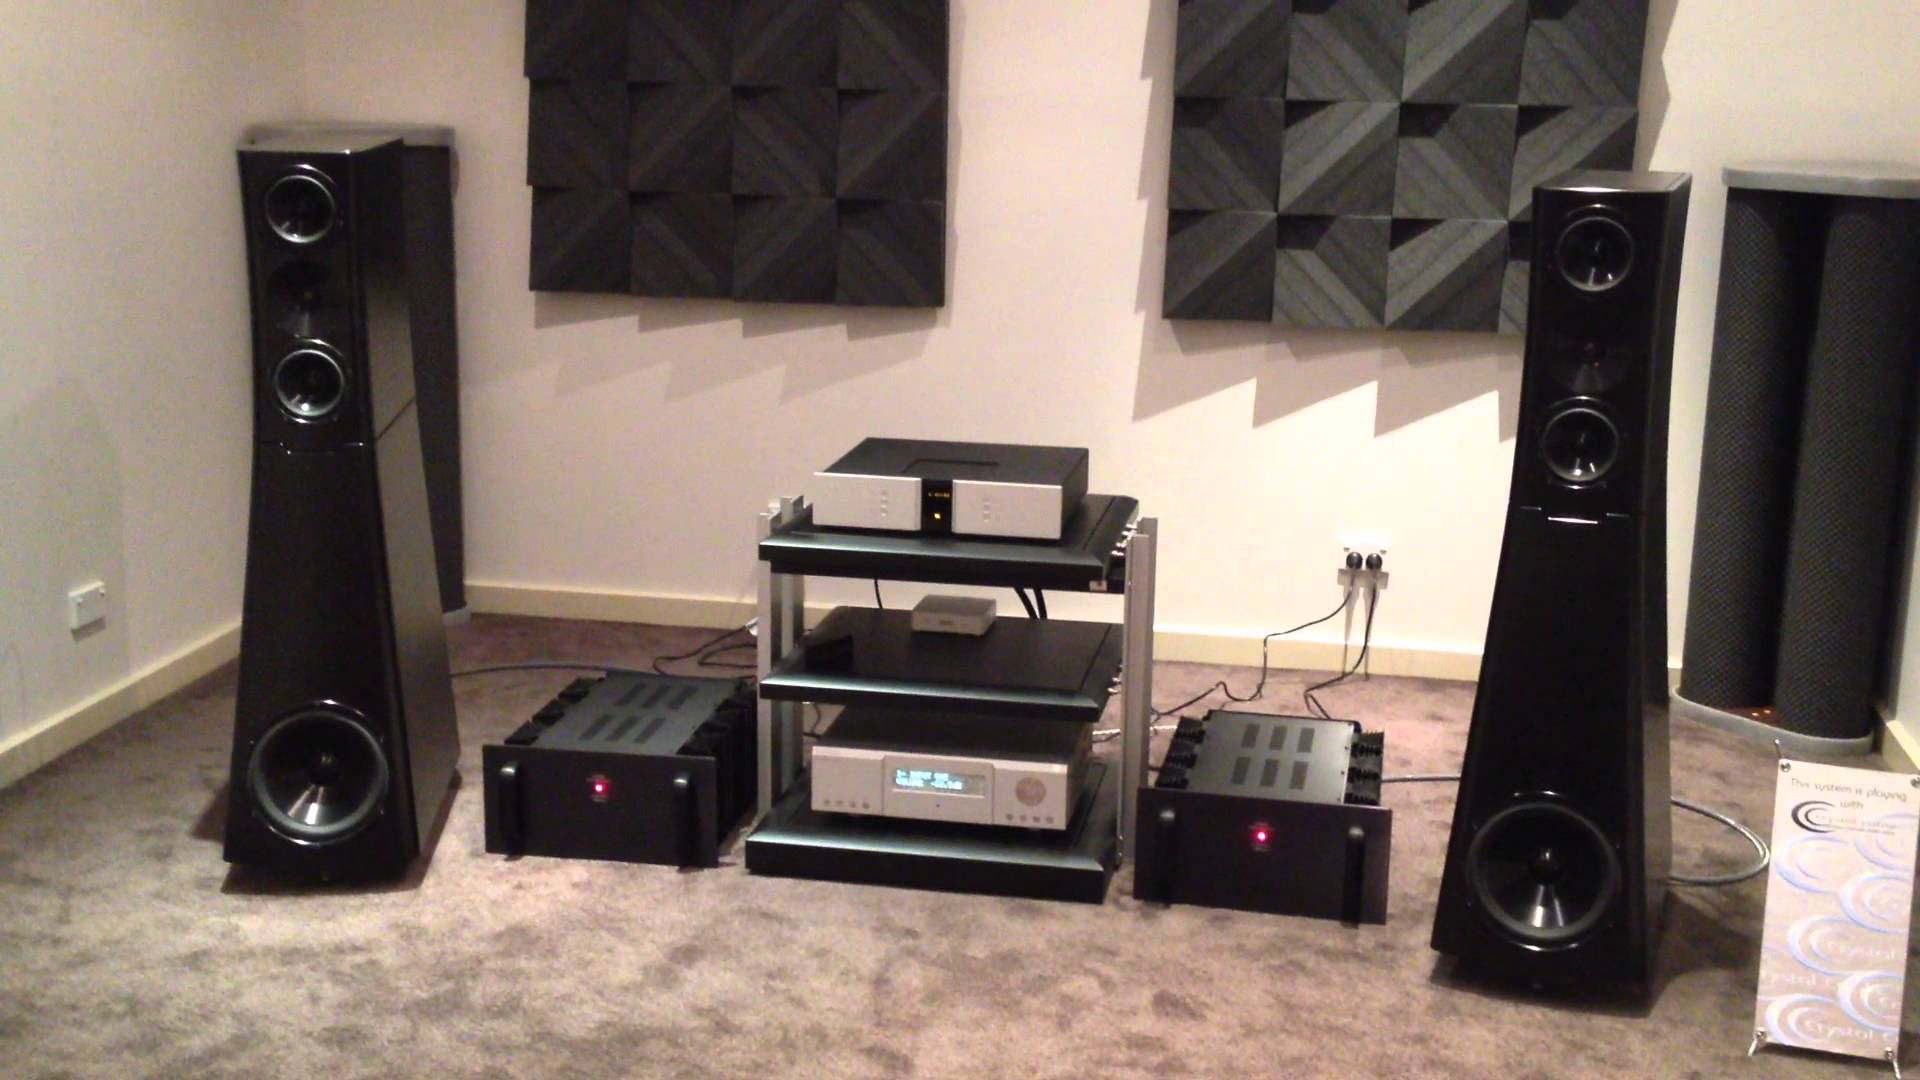 Partner Design - Amplifiers we have in our Ann Arbor Studio